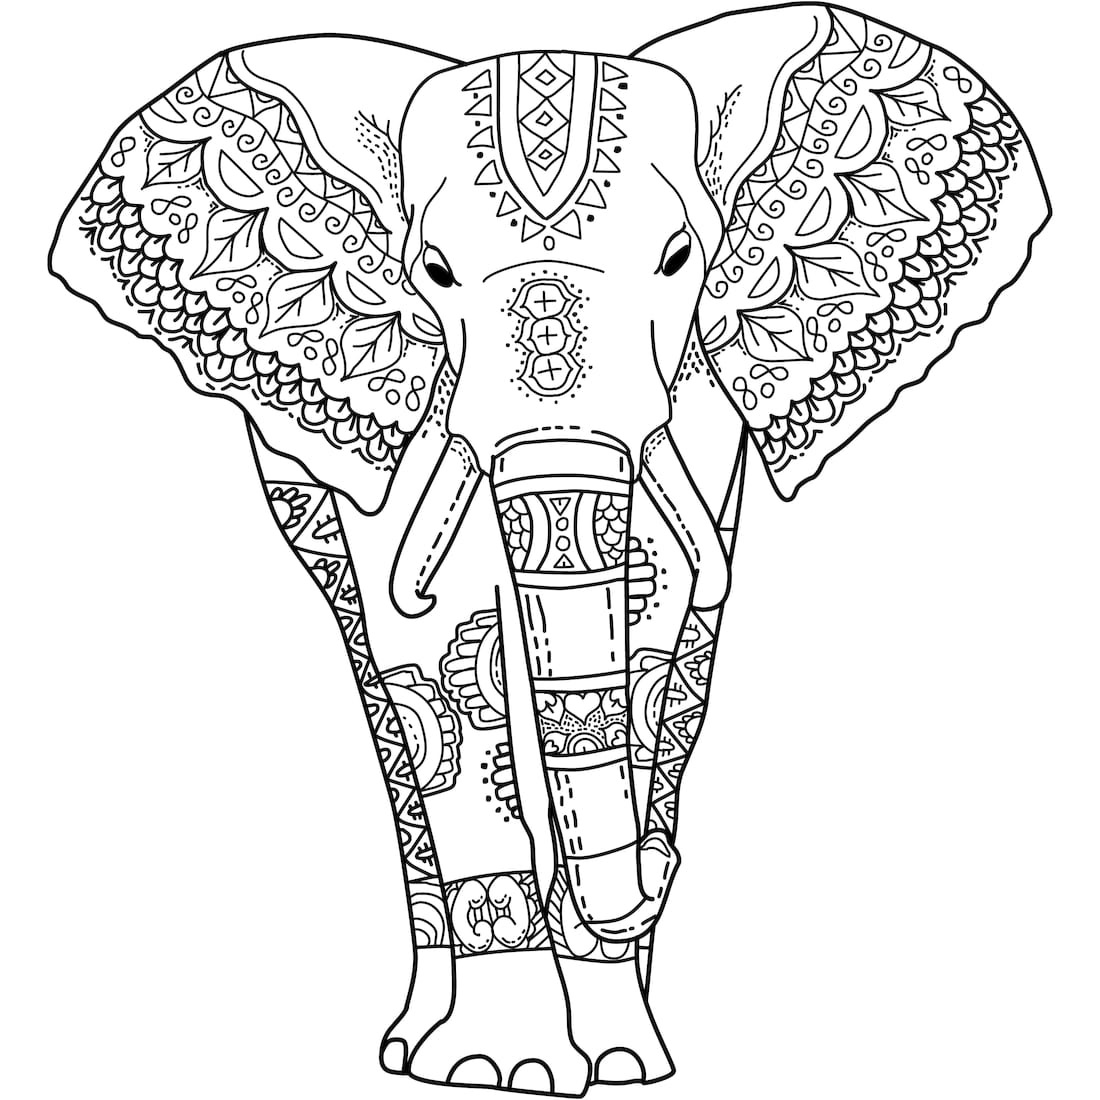 free coloring pages with designs design coloring pages free download on clipartmag designs free coloring with pages